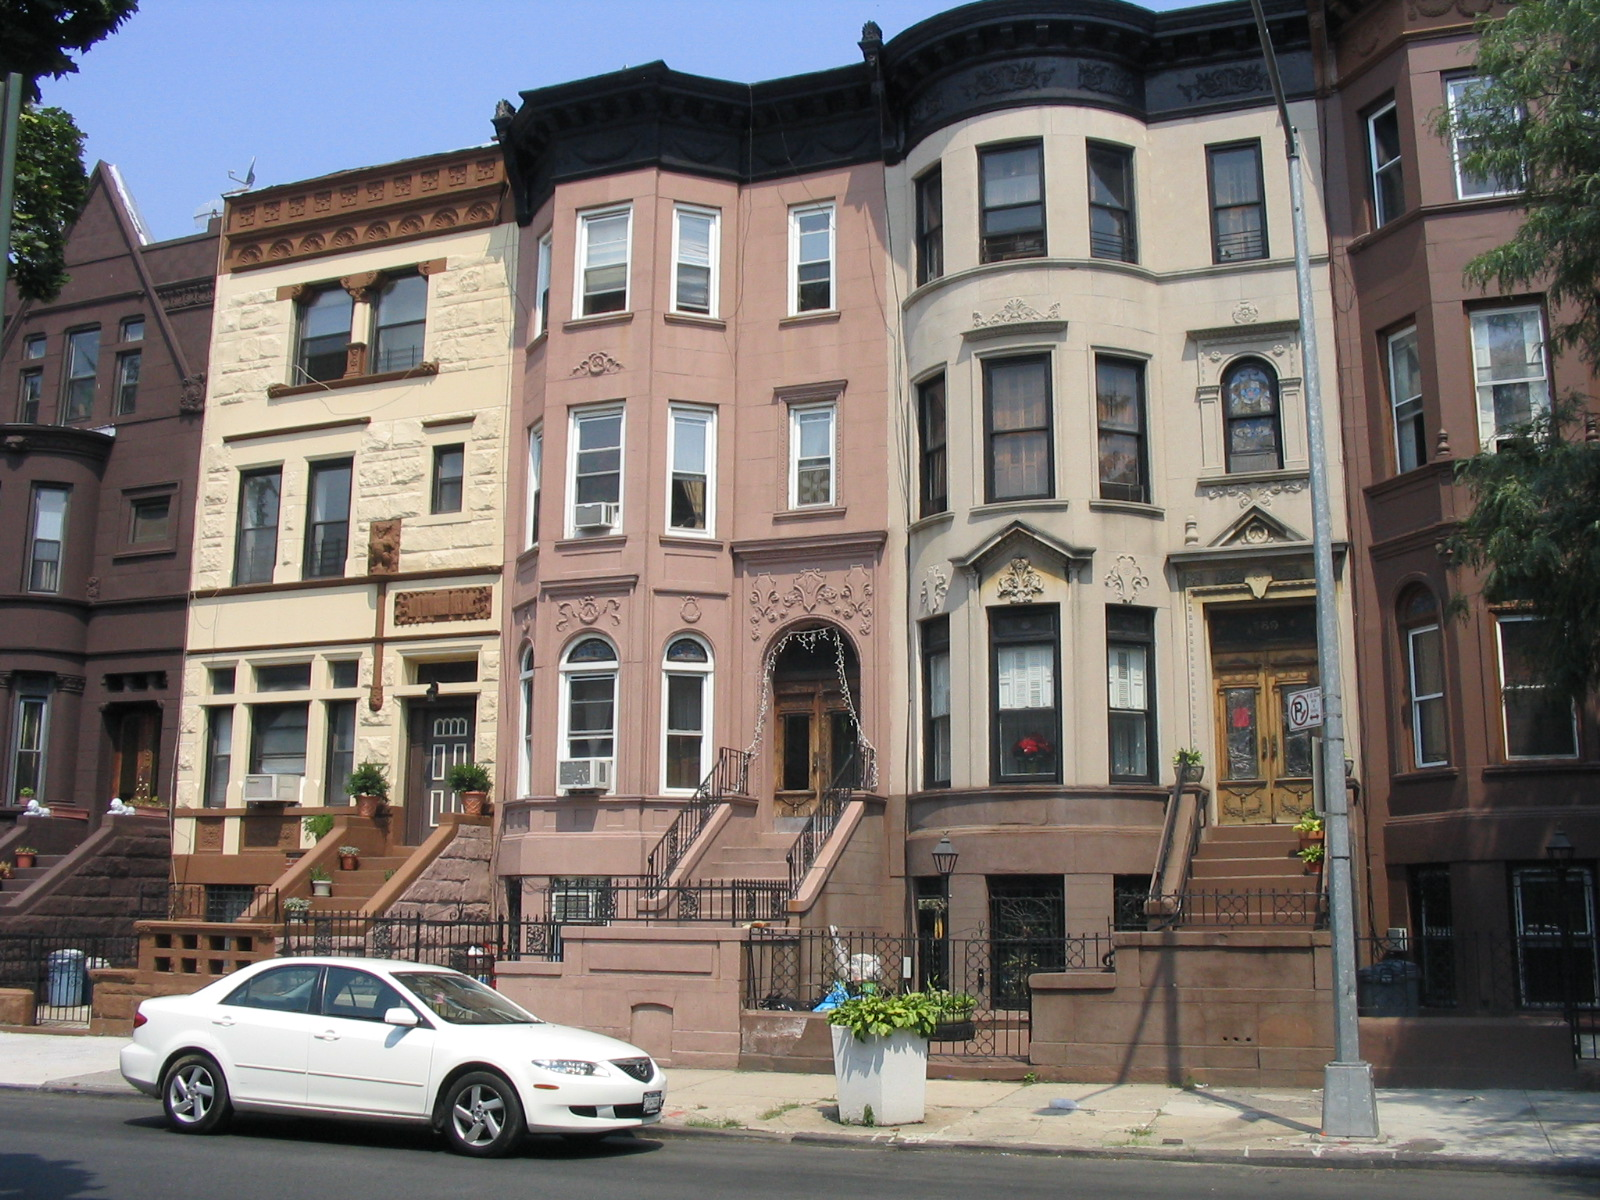 Painted brownstone rowhouses in Bedford-Stuyvesant, Brooklyn, New York